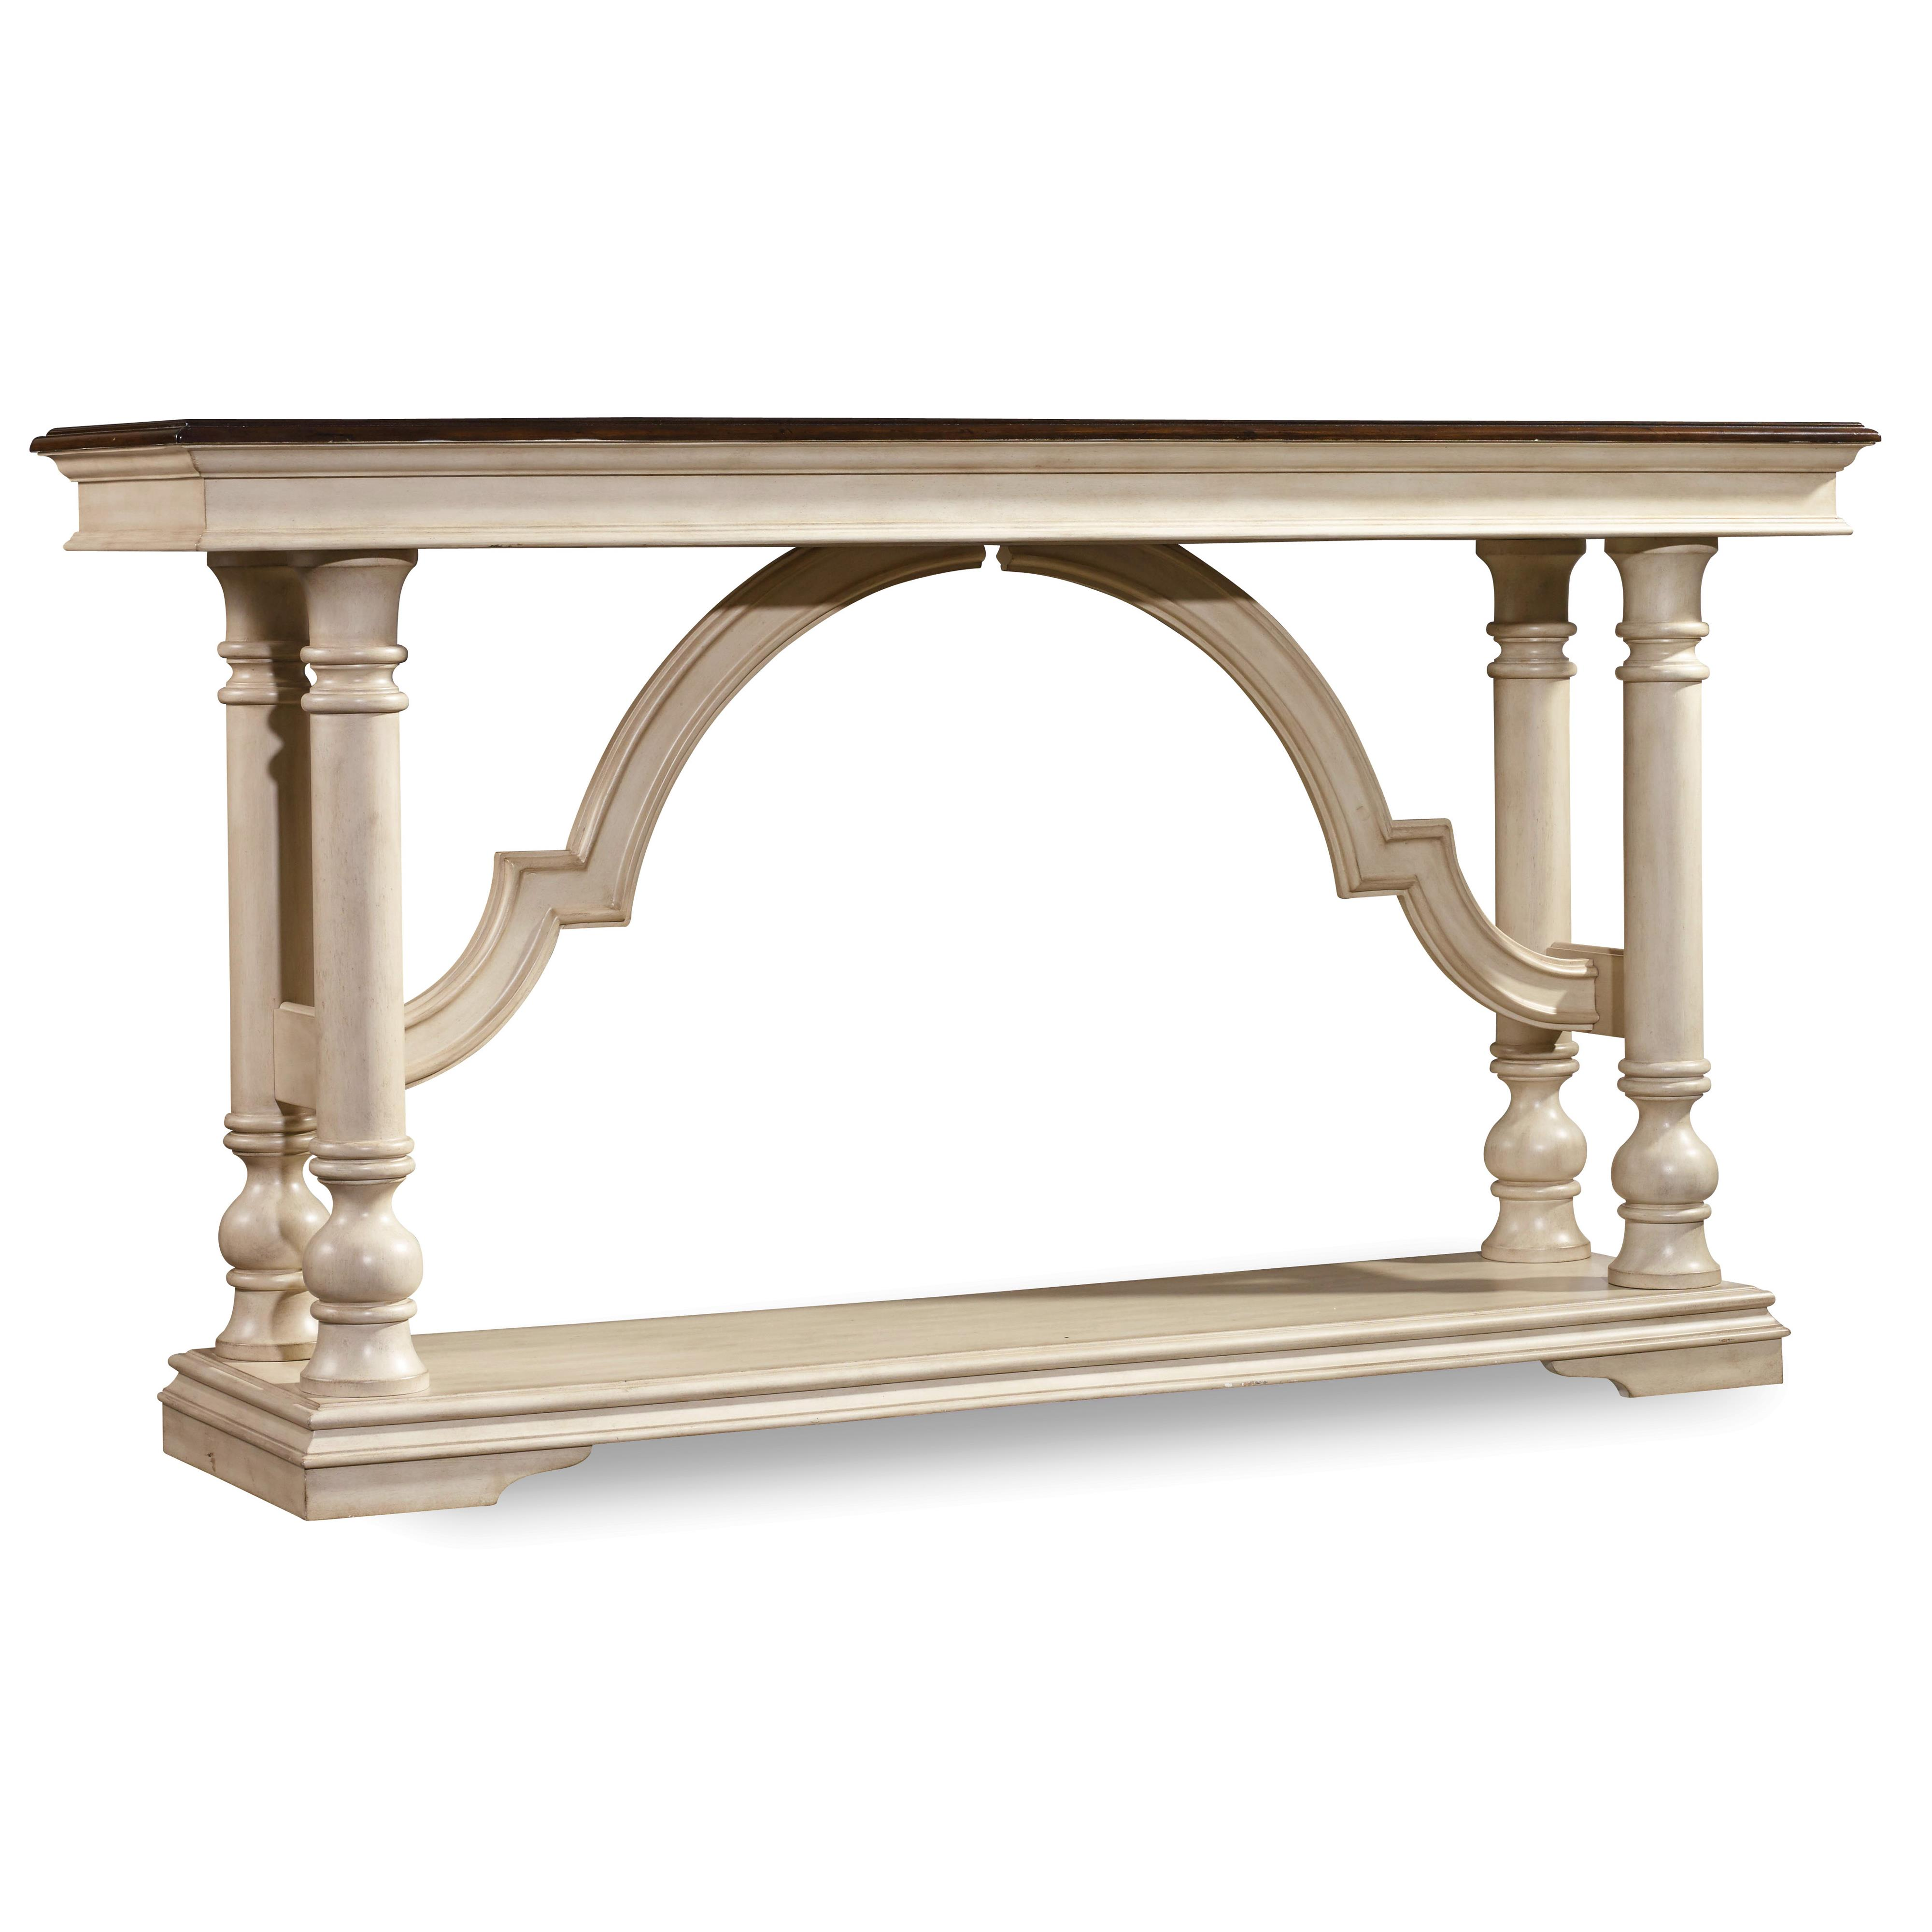 Delicieux Hooker Furniture Leesburg Console Table   Item Number: 5481 85002